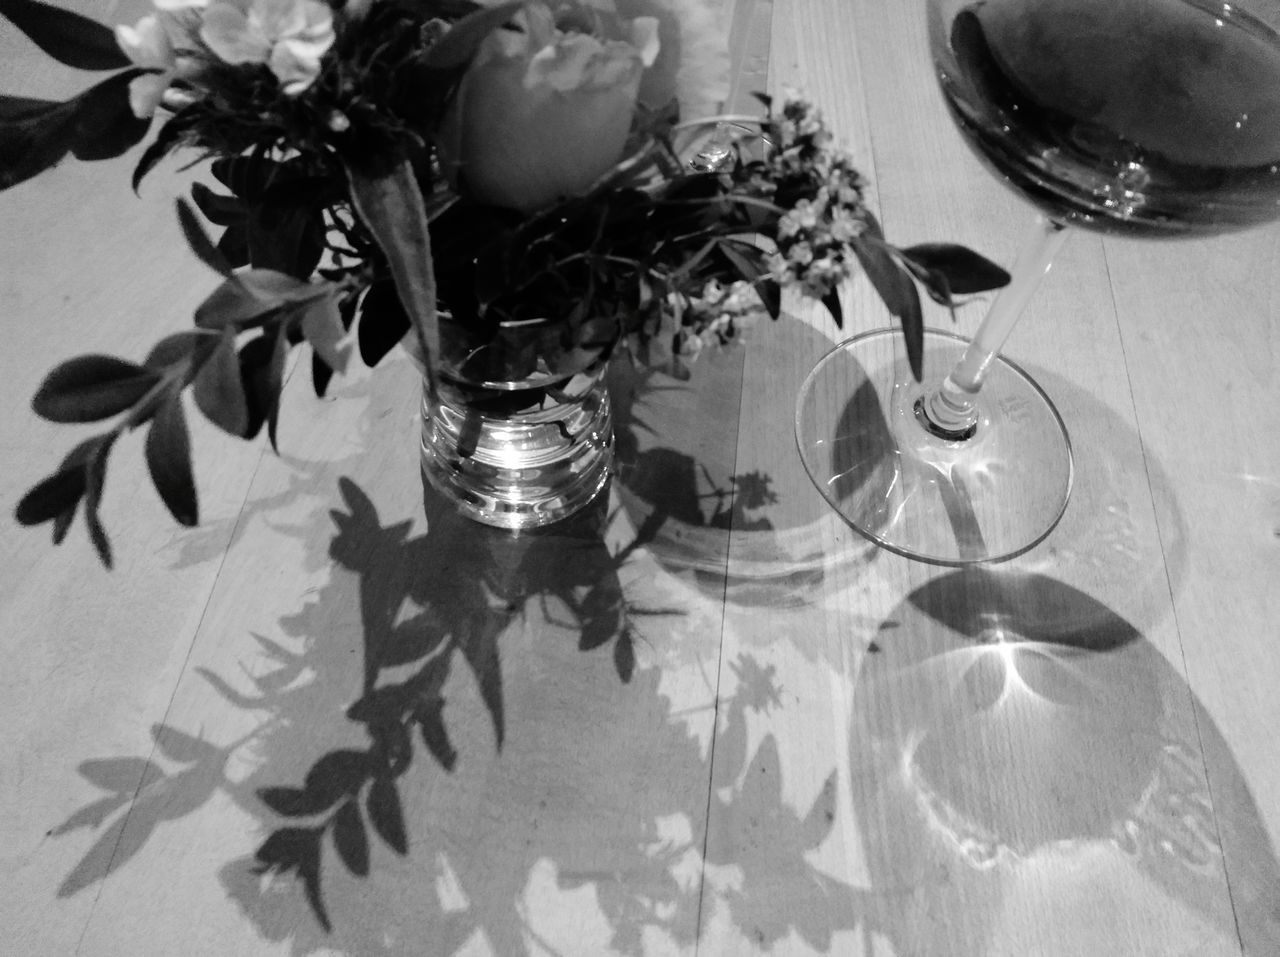 Indoors  Table No People We Are Photography, We Are EyeEm We Are Eyeem, We Are Photography Black & White Shadow Black And White